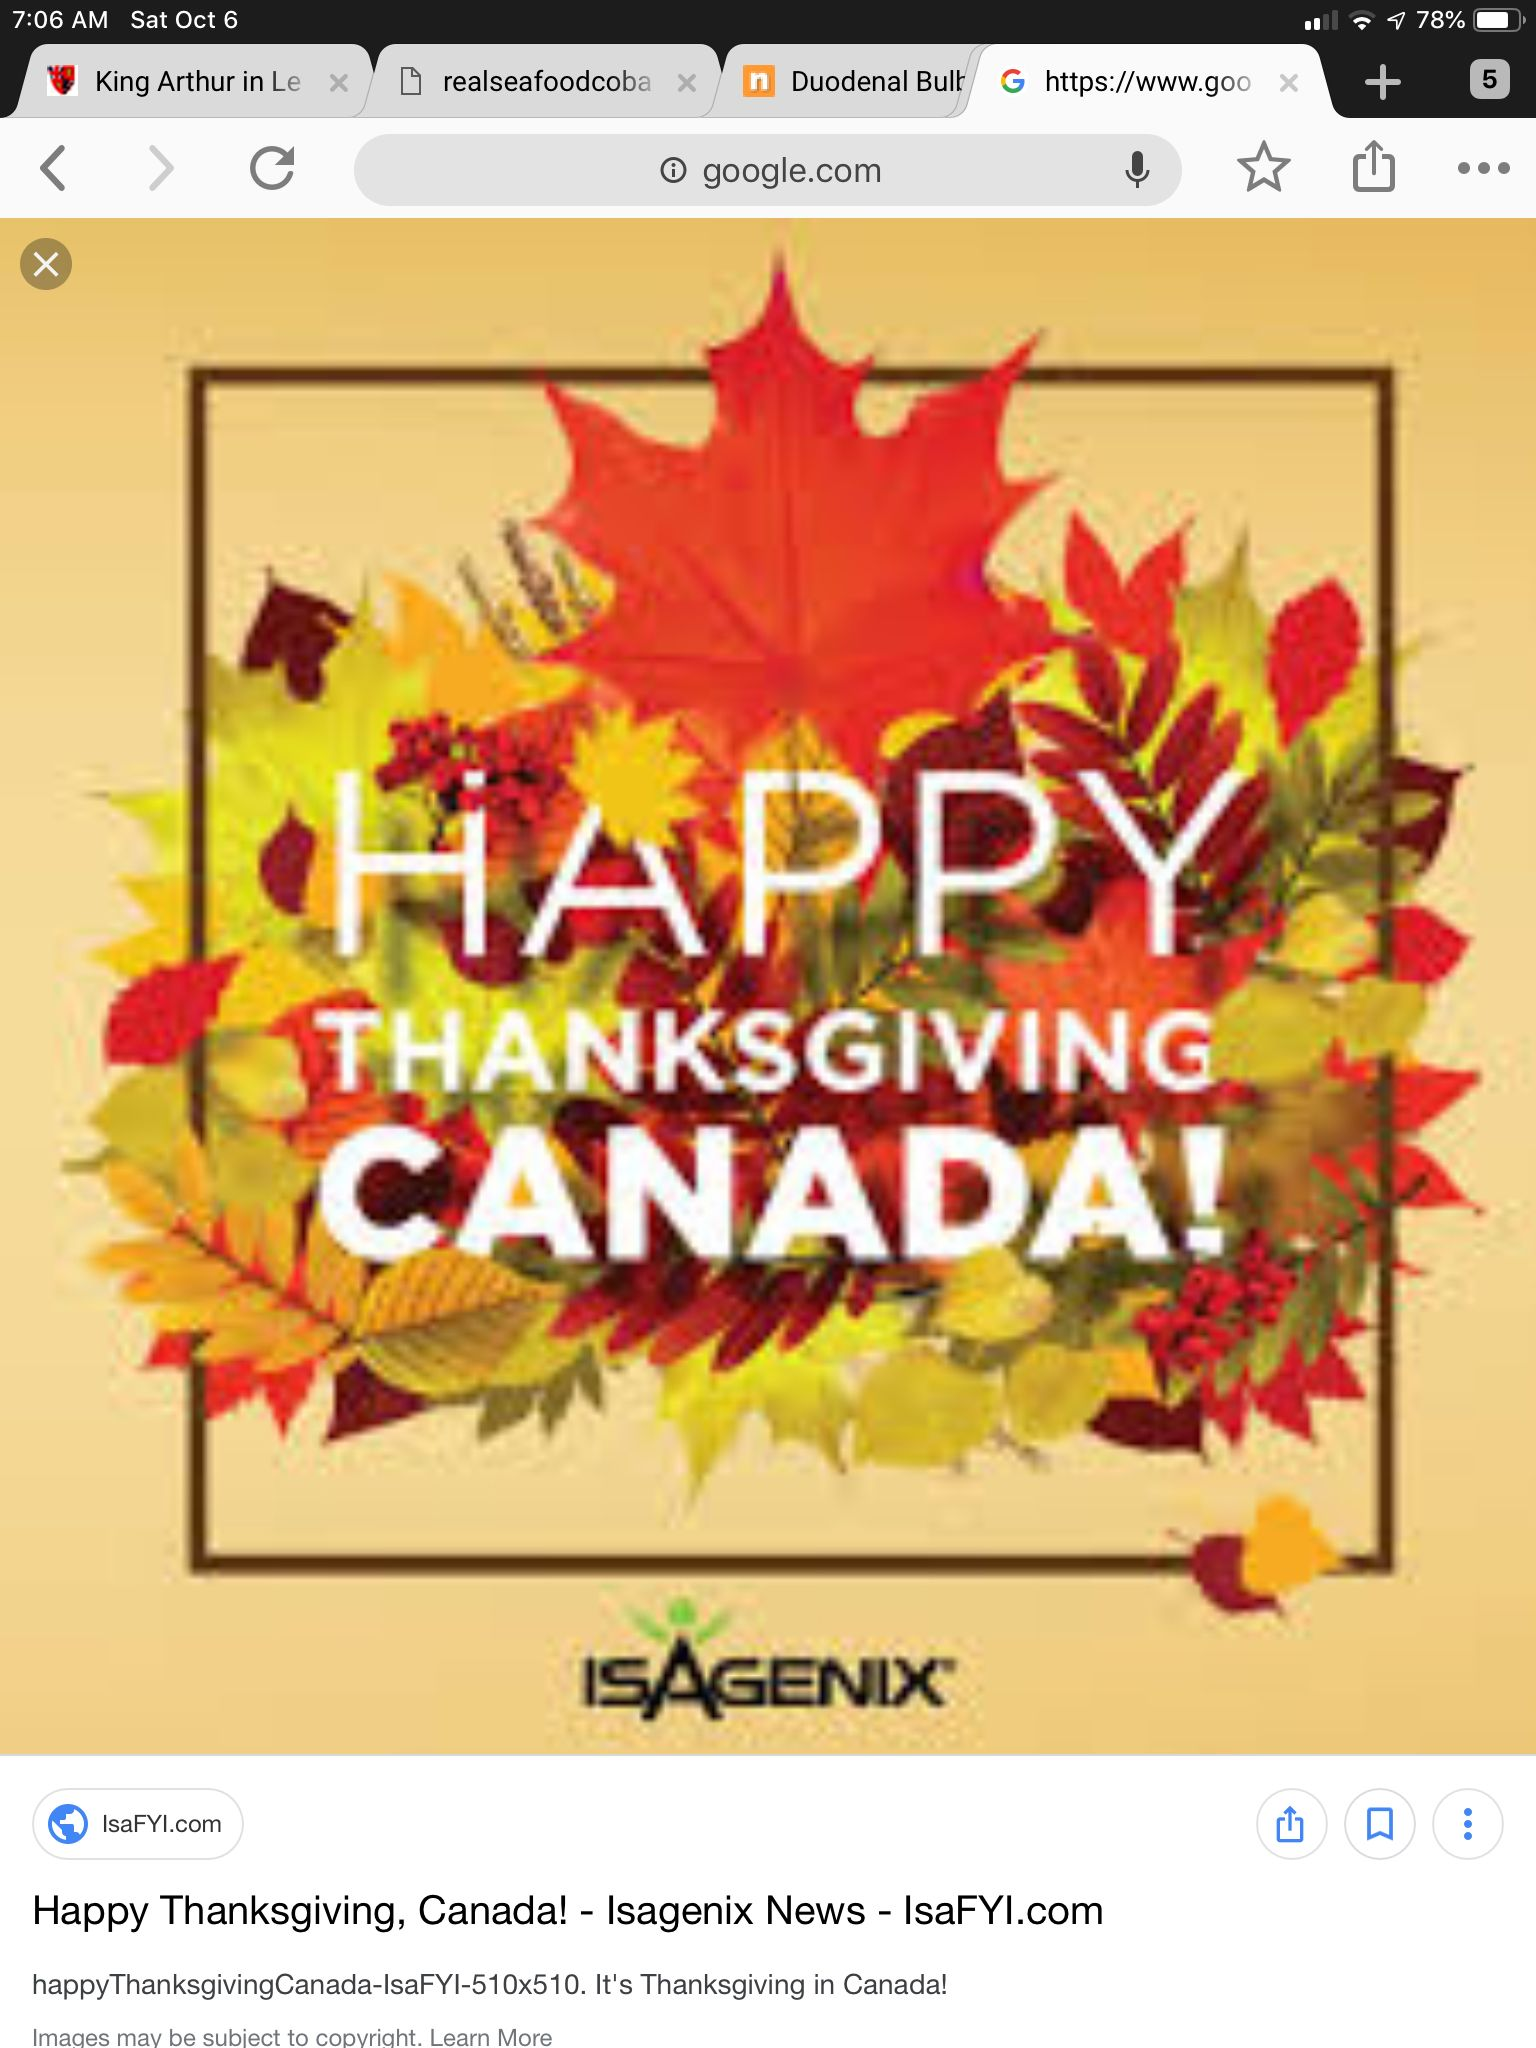 Canadian Thanksgiving Happy Thanksgiving Canada Canadian Thanksgiving Thanksgiving Greetings